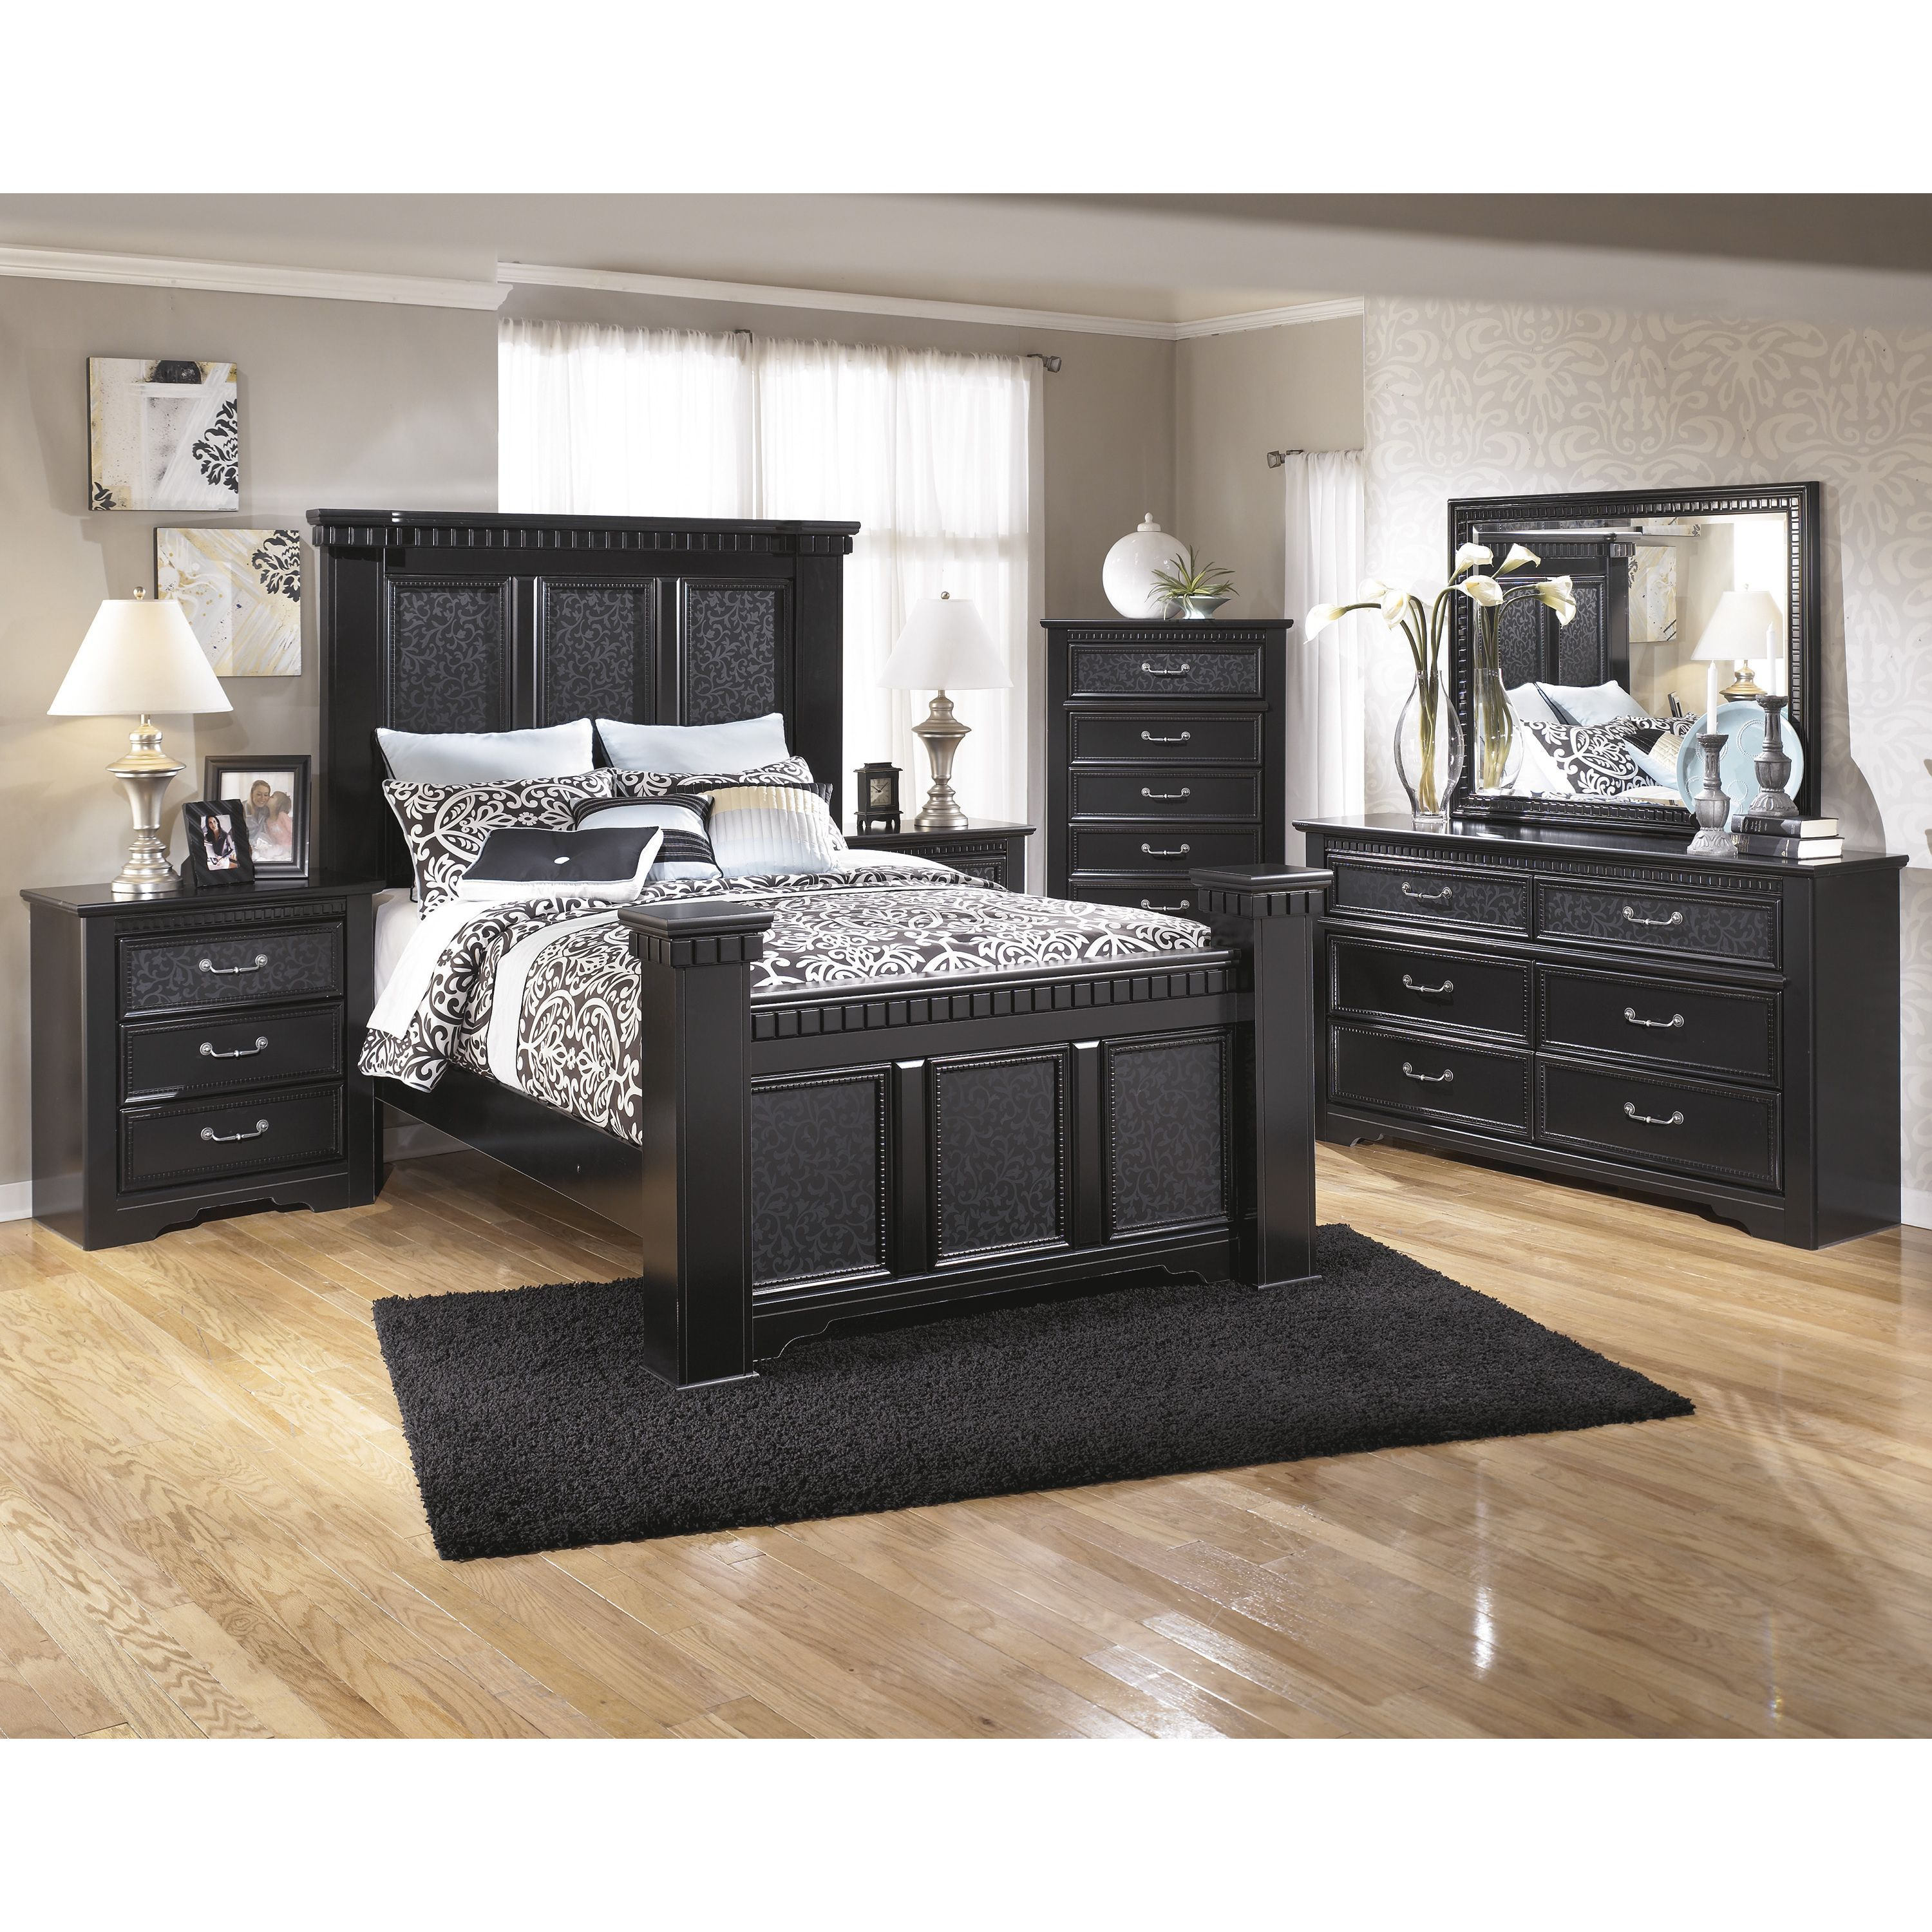 The Cavallino Poster Bed From Ashley Furniture Will Add A